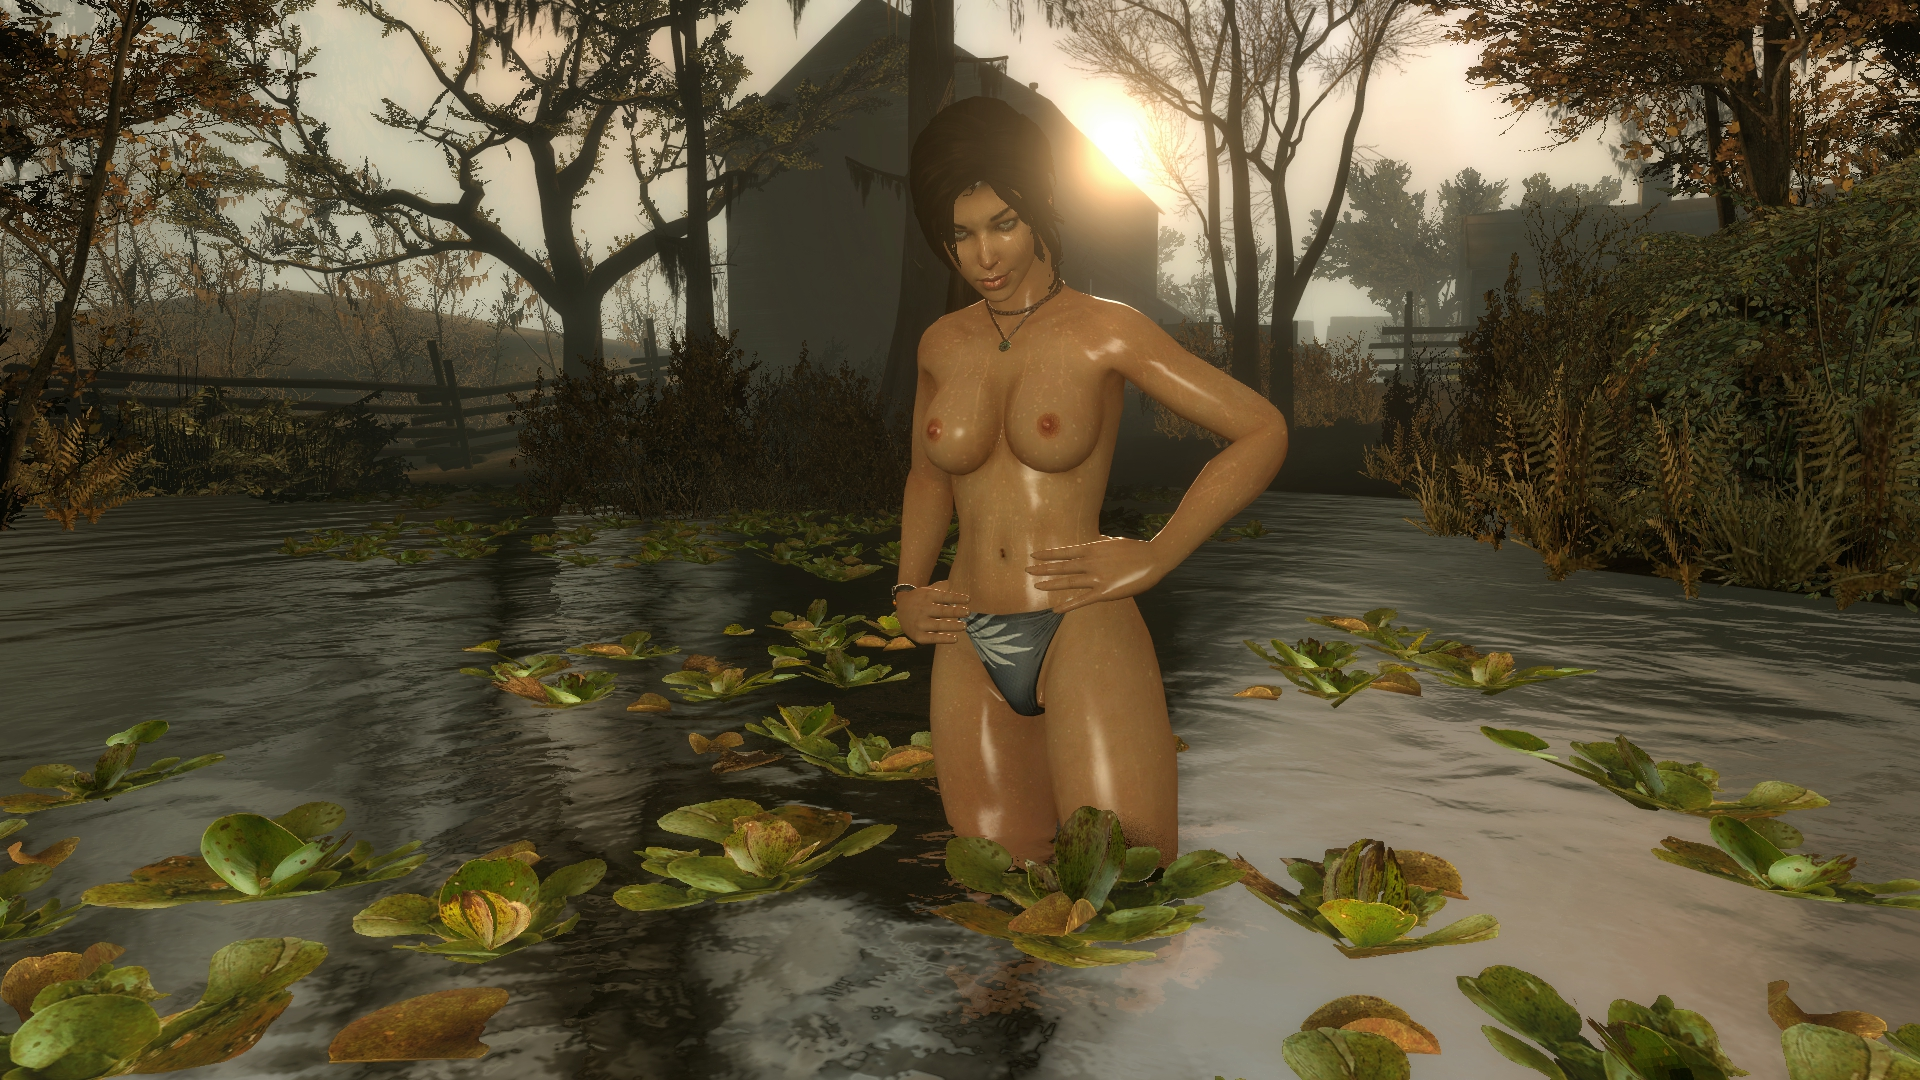 Download tombraider 13 nude patch adult movie